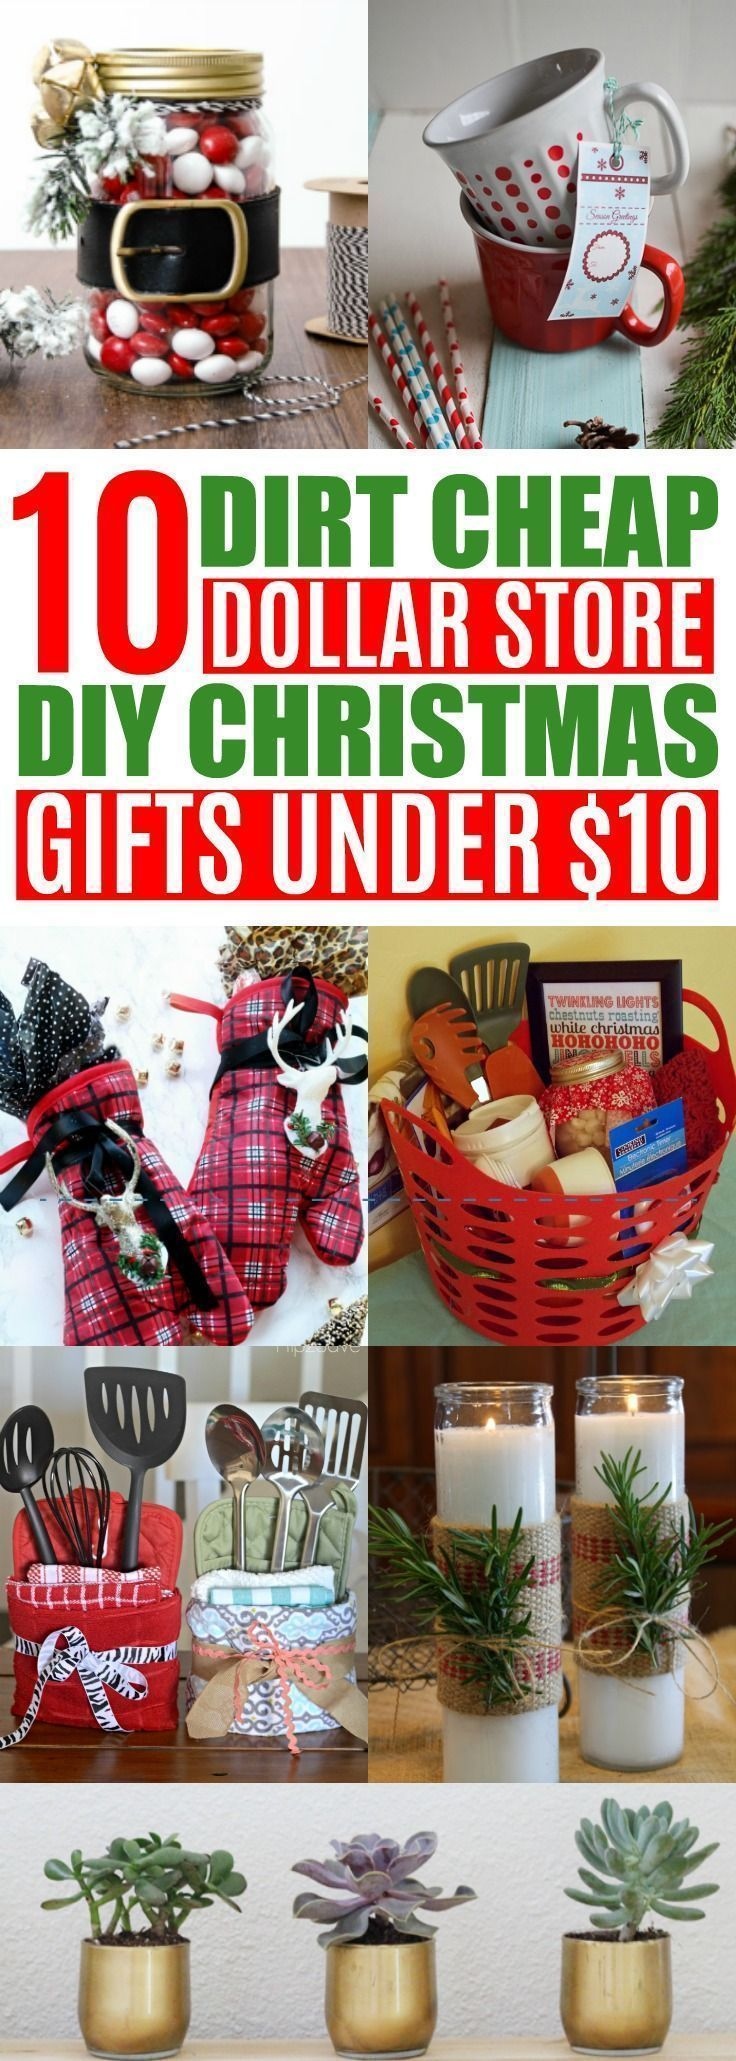 10 DIY Cheap Christmas Gift Ideas From the Dollar Store Under $10 ...